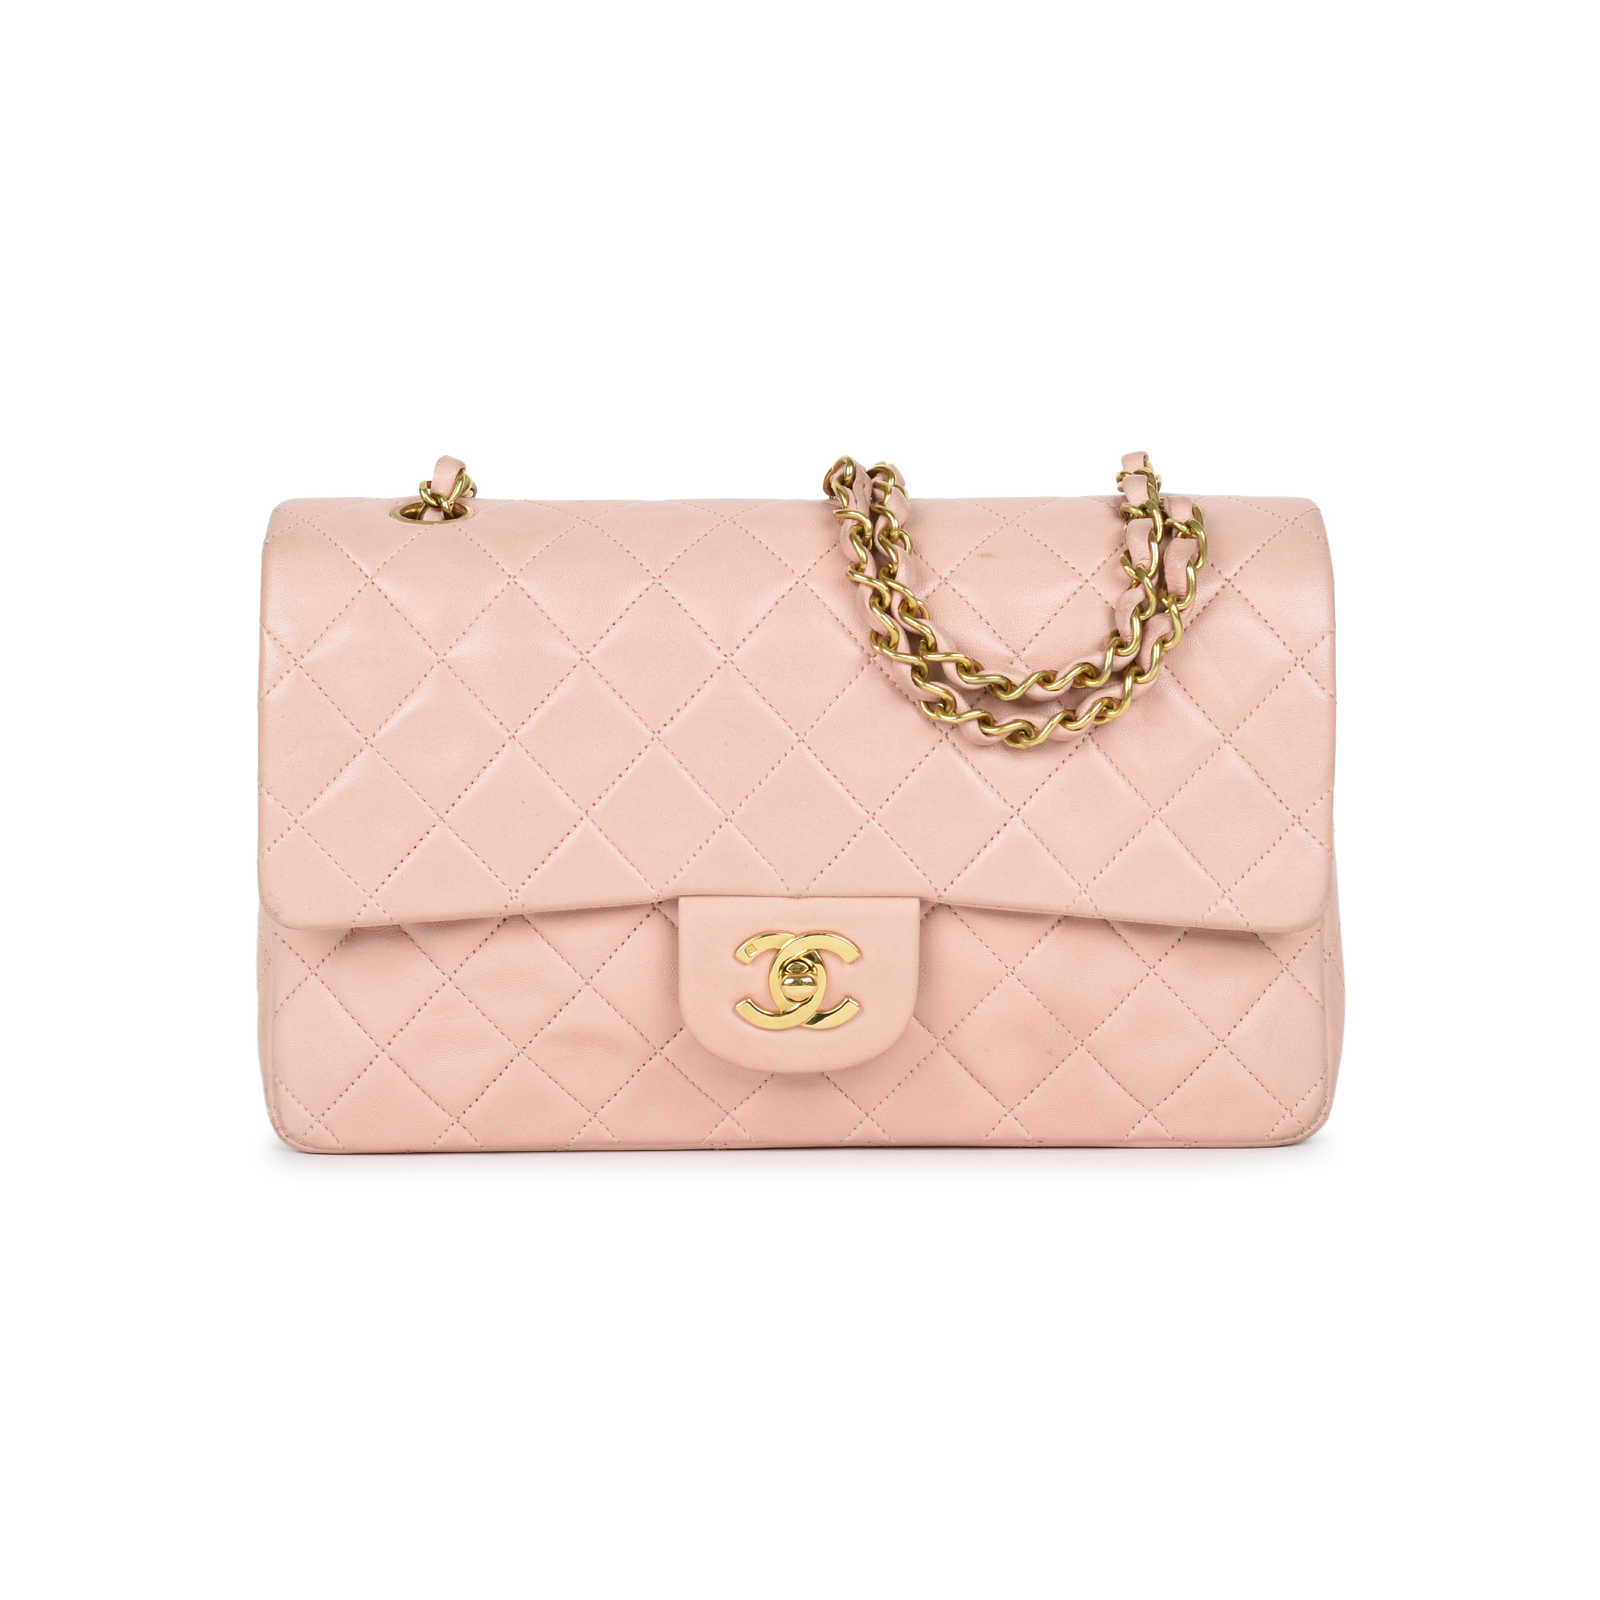 9deaff5fb4f0 Authentic Vintage Chanel Light Dusty Rose Medium Classic Flap  (PSS-051-00385) ...